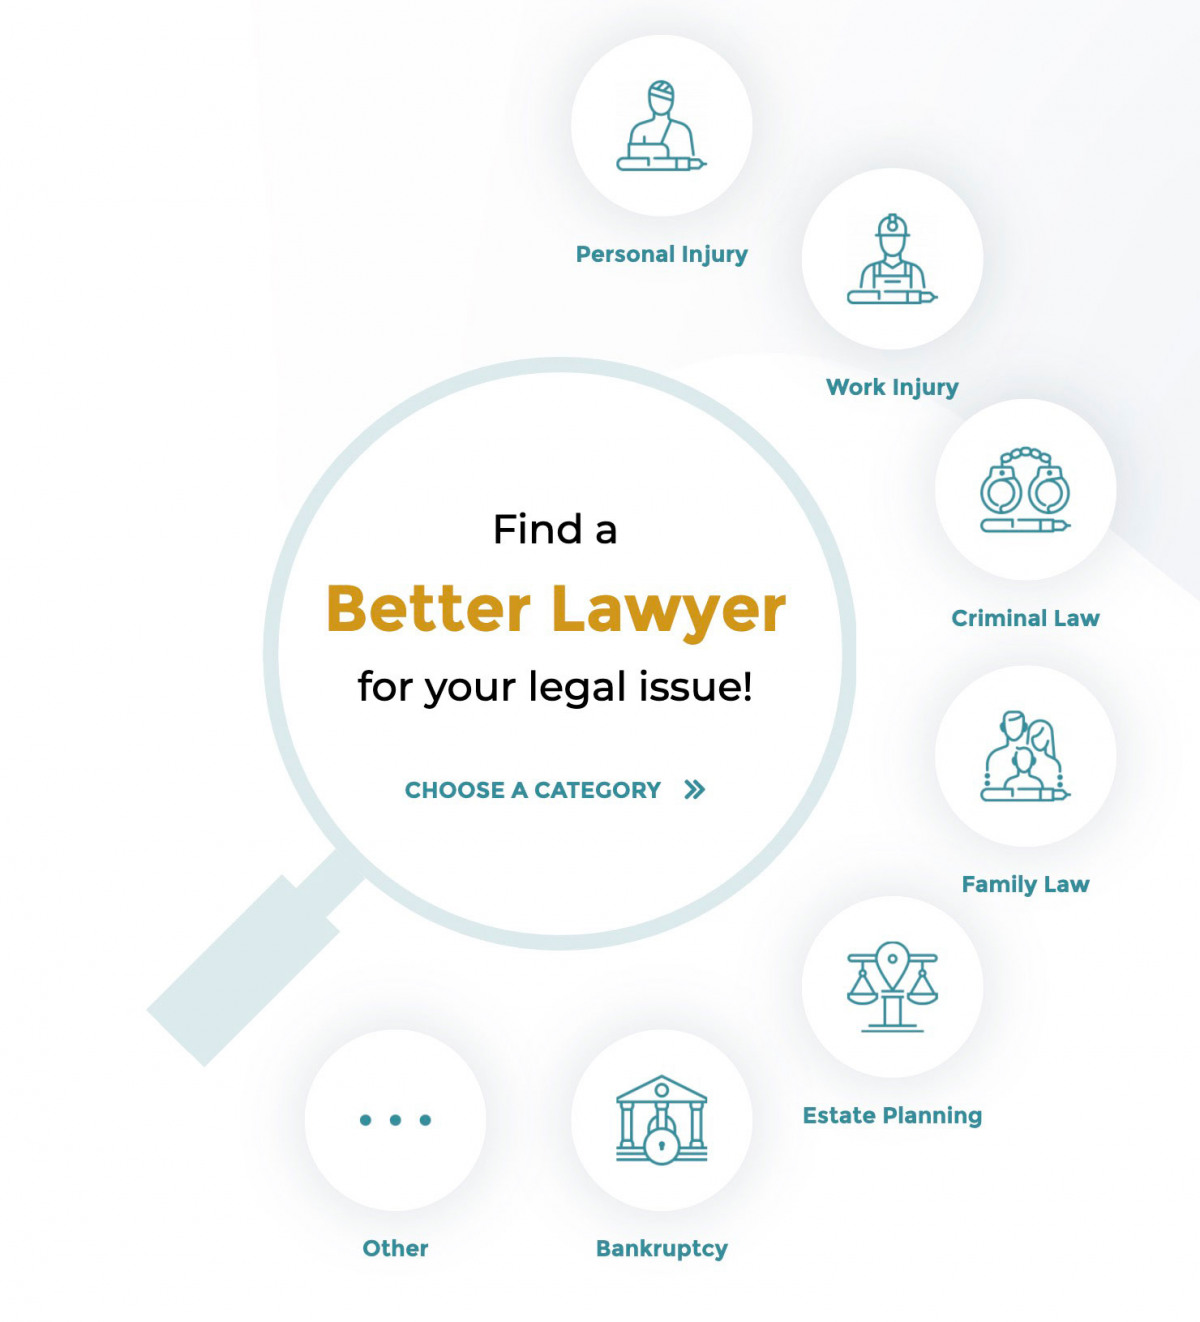 Image of website for A Better Lawyer